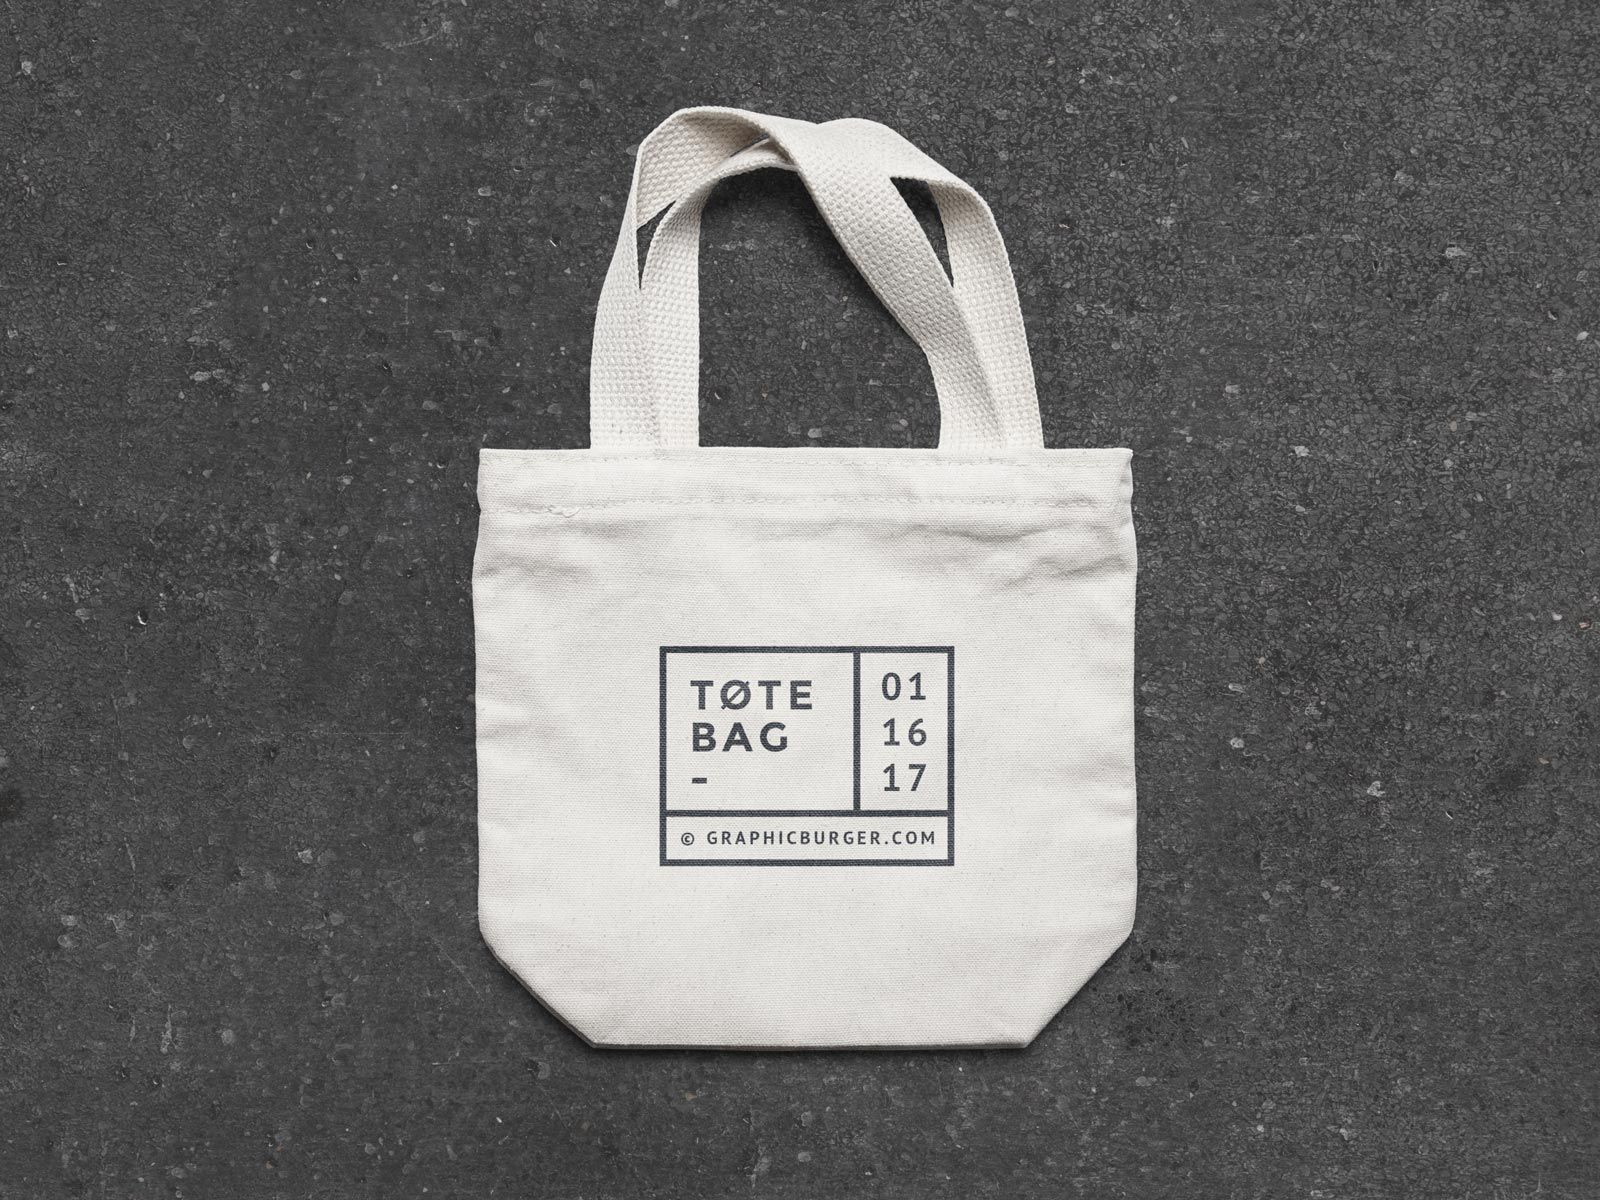 Download Image Result For Adobe Canvas Tote Bag Small Canvas Bags Bag Mockup Tote Bag